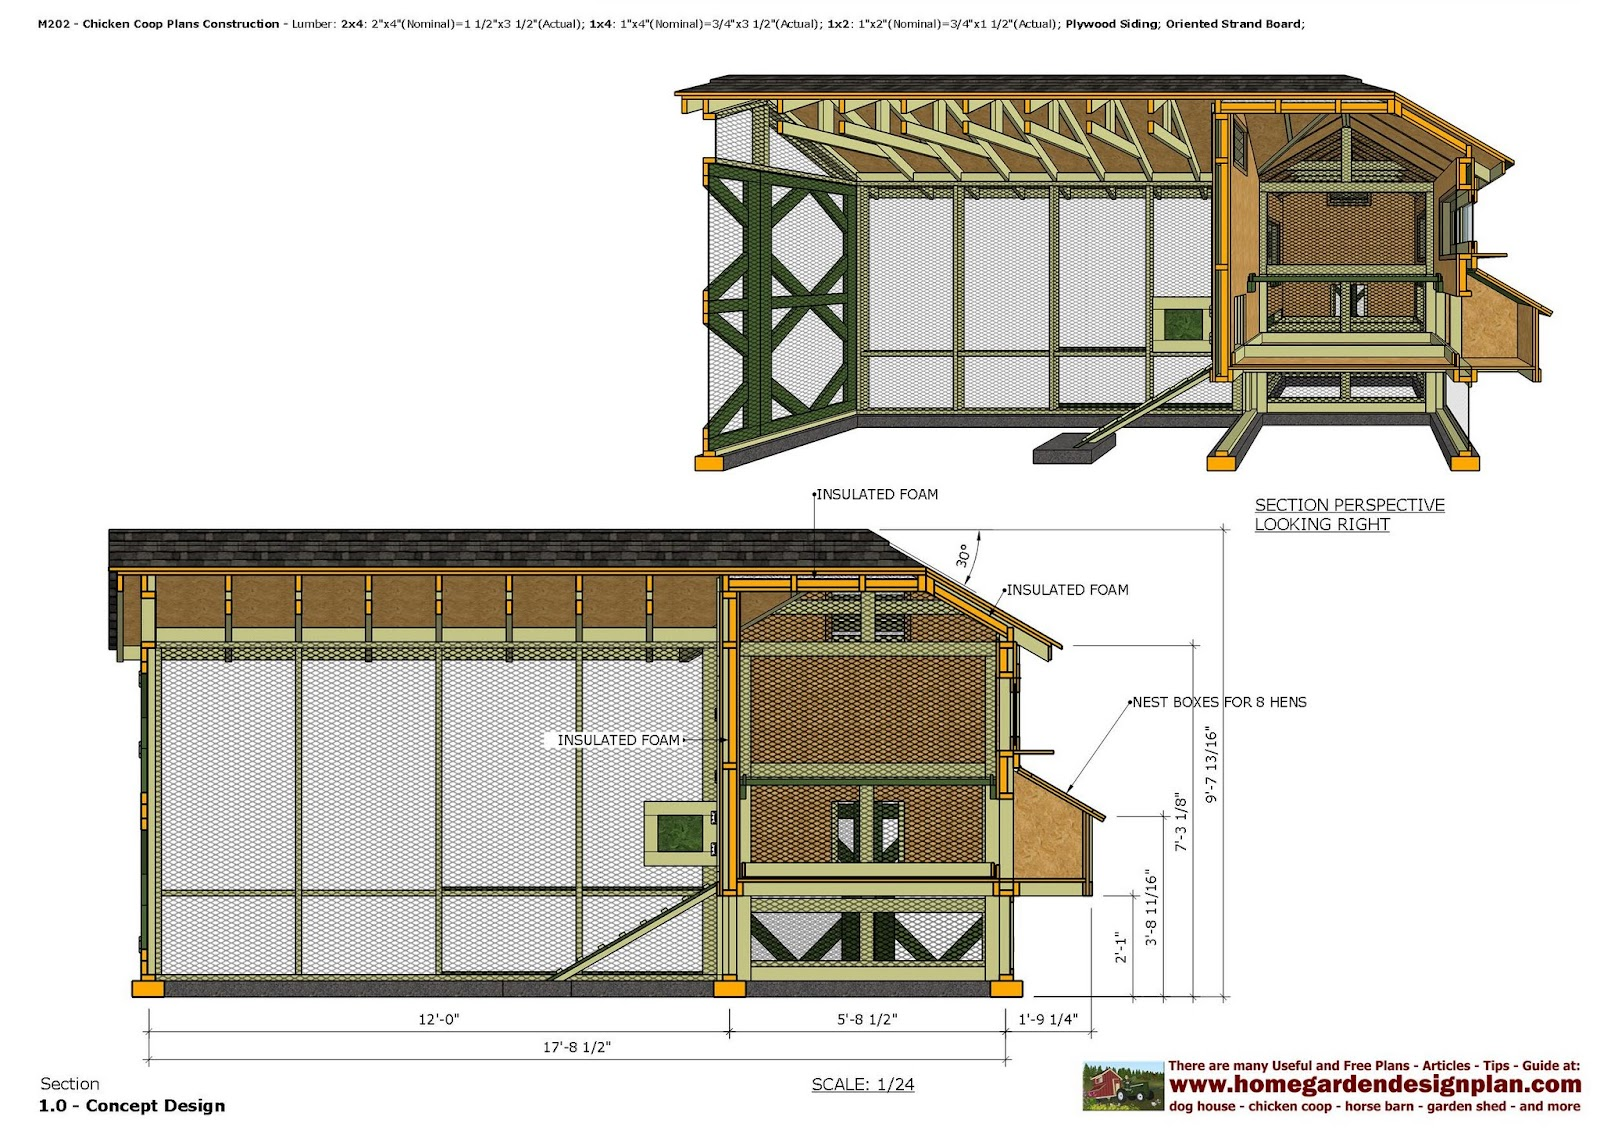 Home garden plans m202 2 in 1 chicken coop plans for Plans for a chicken coop for 12 chickens